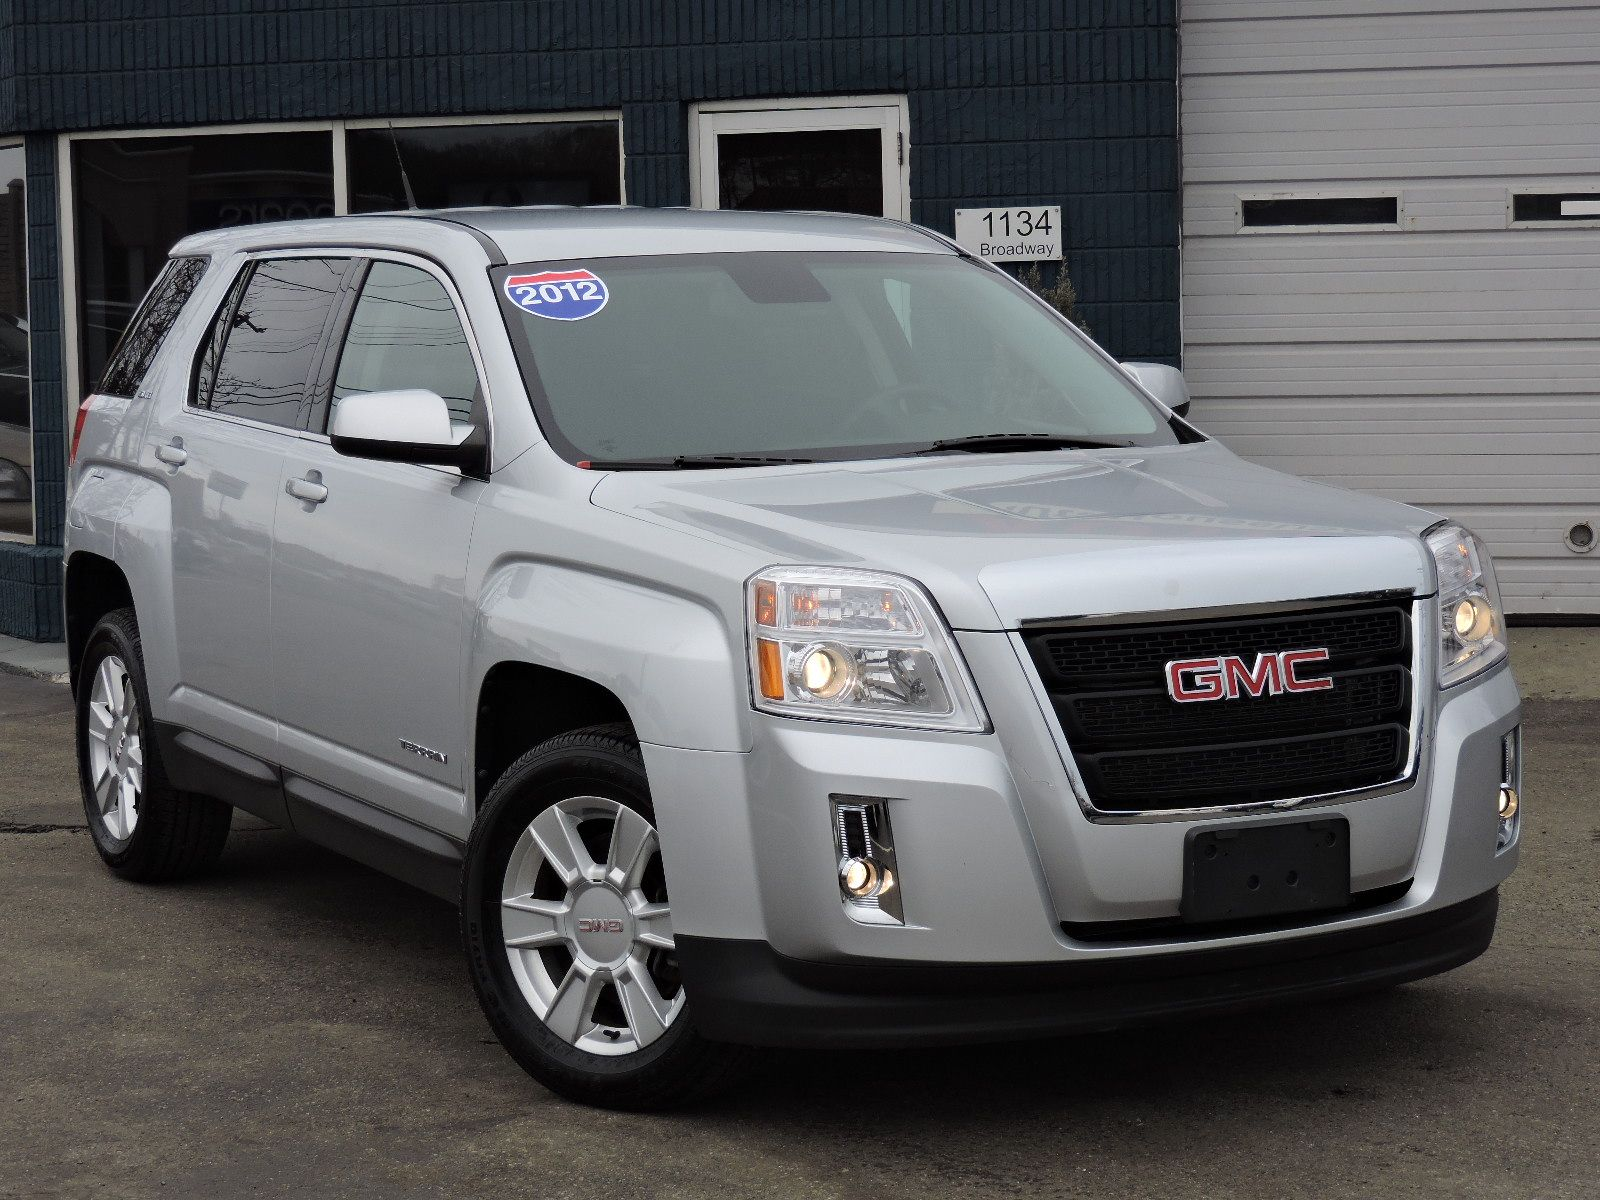 terrian models west select gmc terrain plains